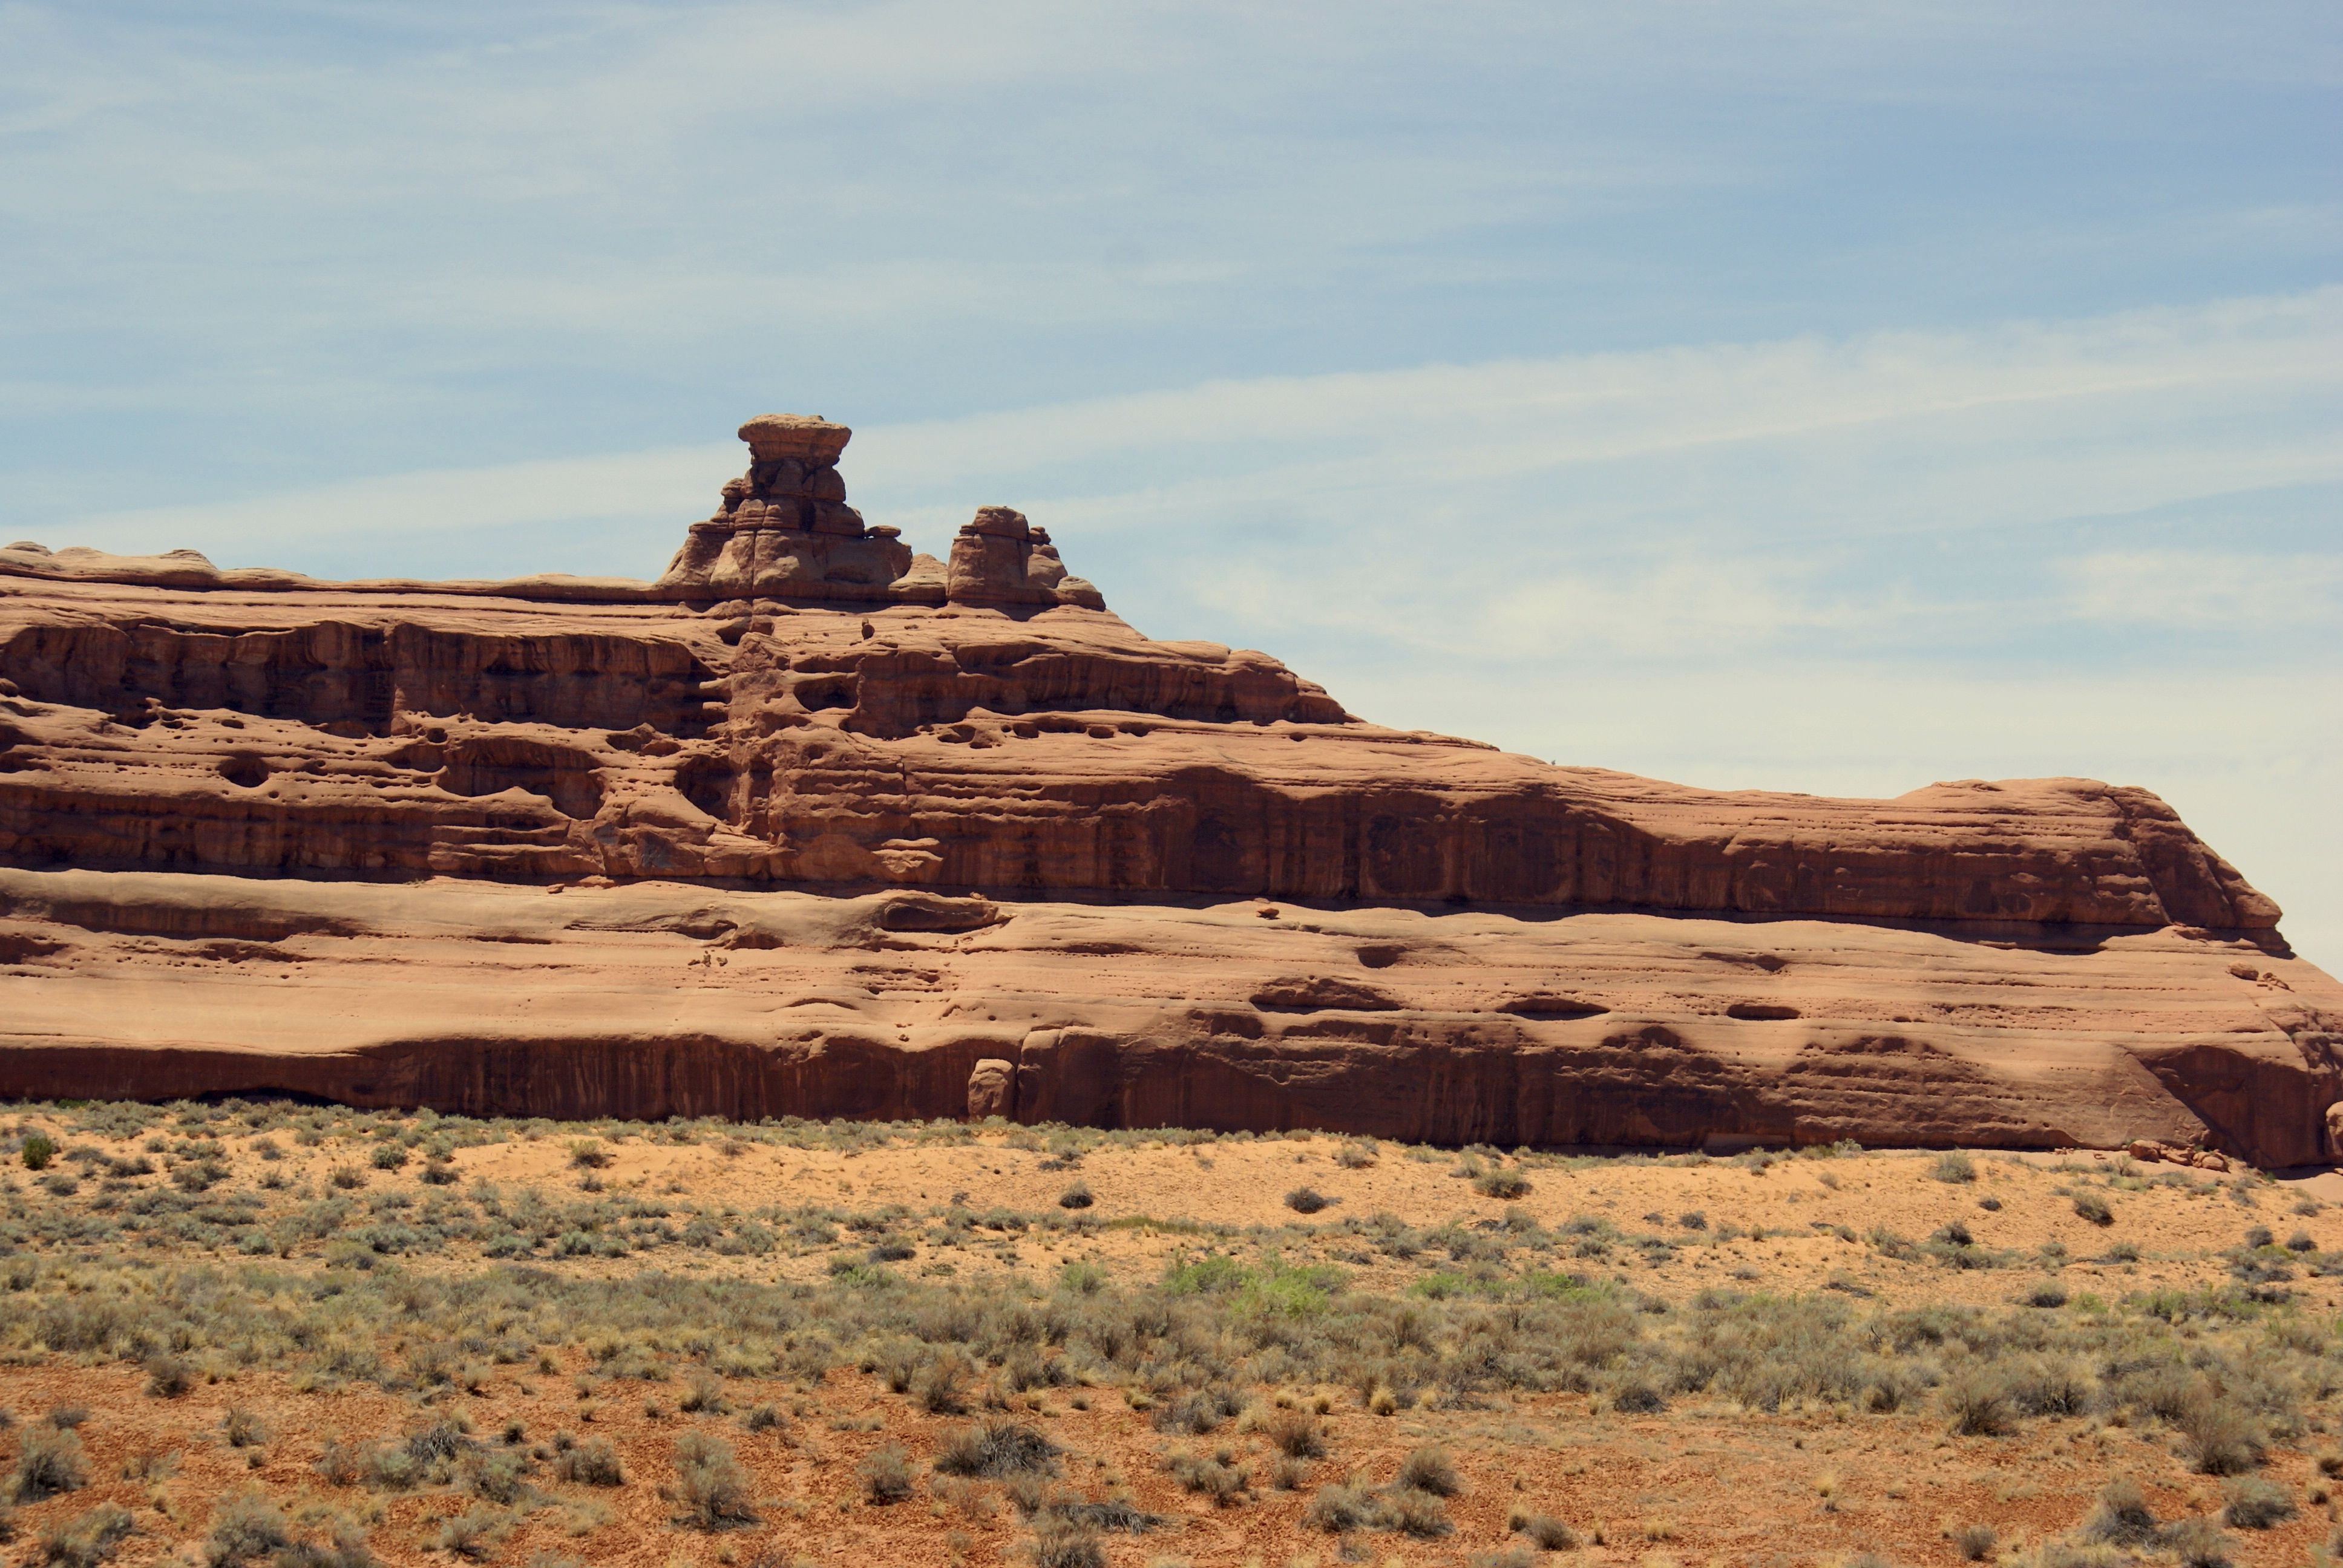 Pin by Joe W. Miller on ARCHES   Monument valley, Natural ...